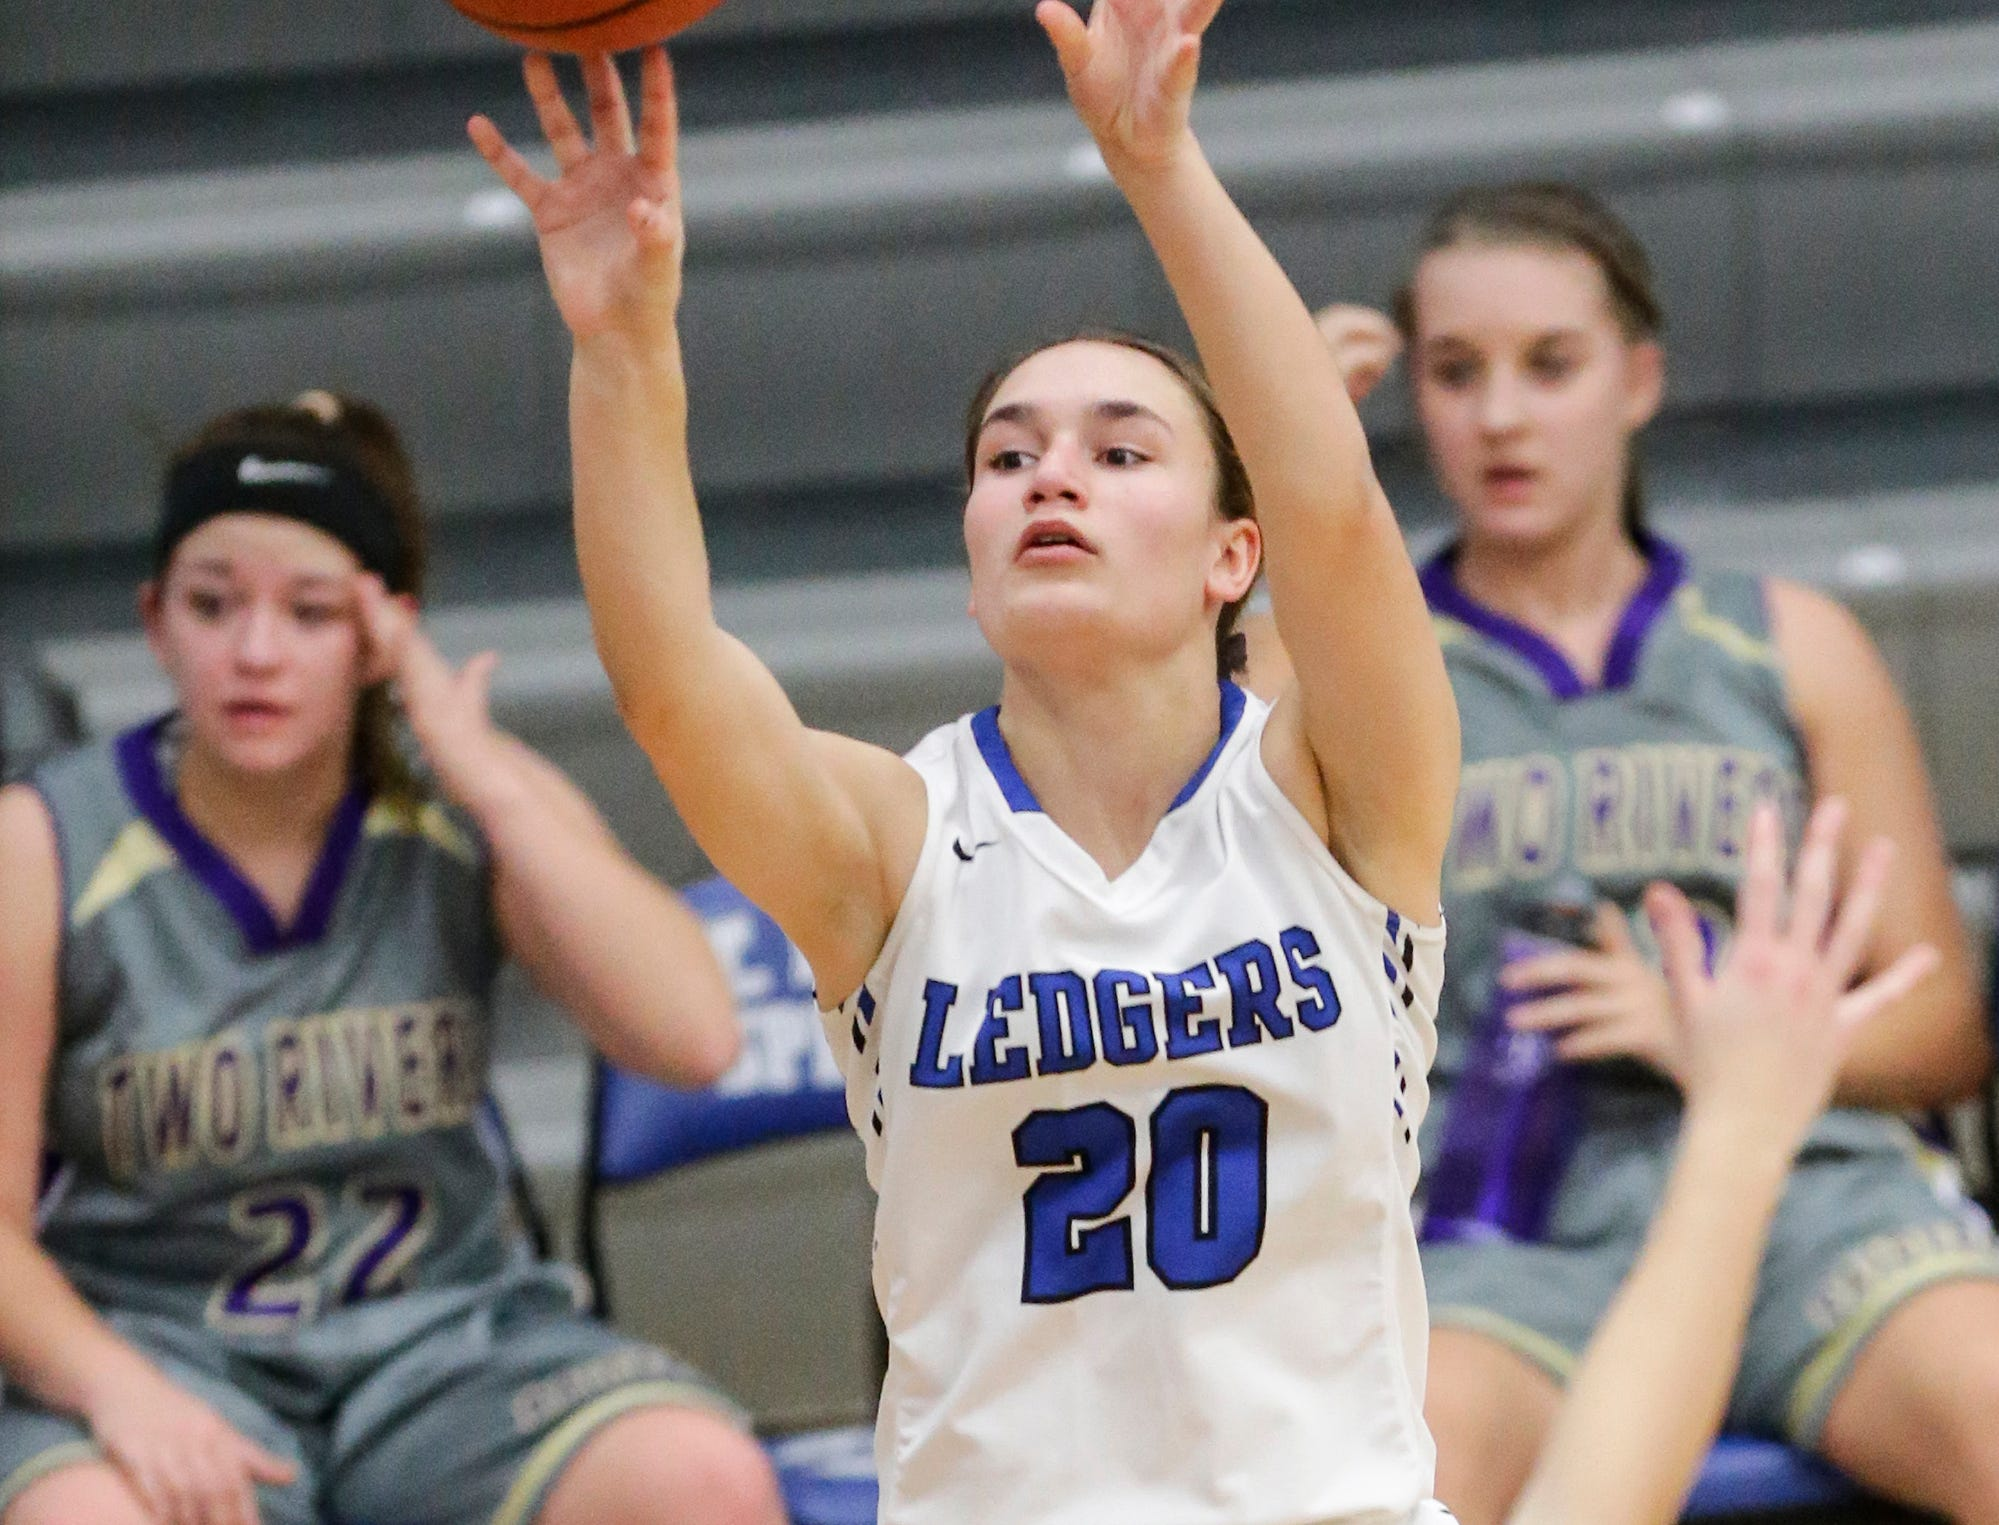 St. Mary's Springs girls basketball's Jenna Gilgenbach attempts a basket against Two Rivers High School during their game Friday, November 16, 2018 in Fond du Lac. Doug Raflik/USA TODAY NETWORK-Wisconsin